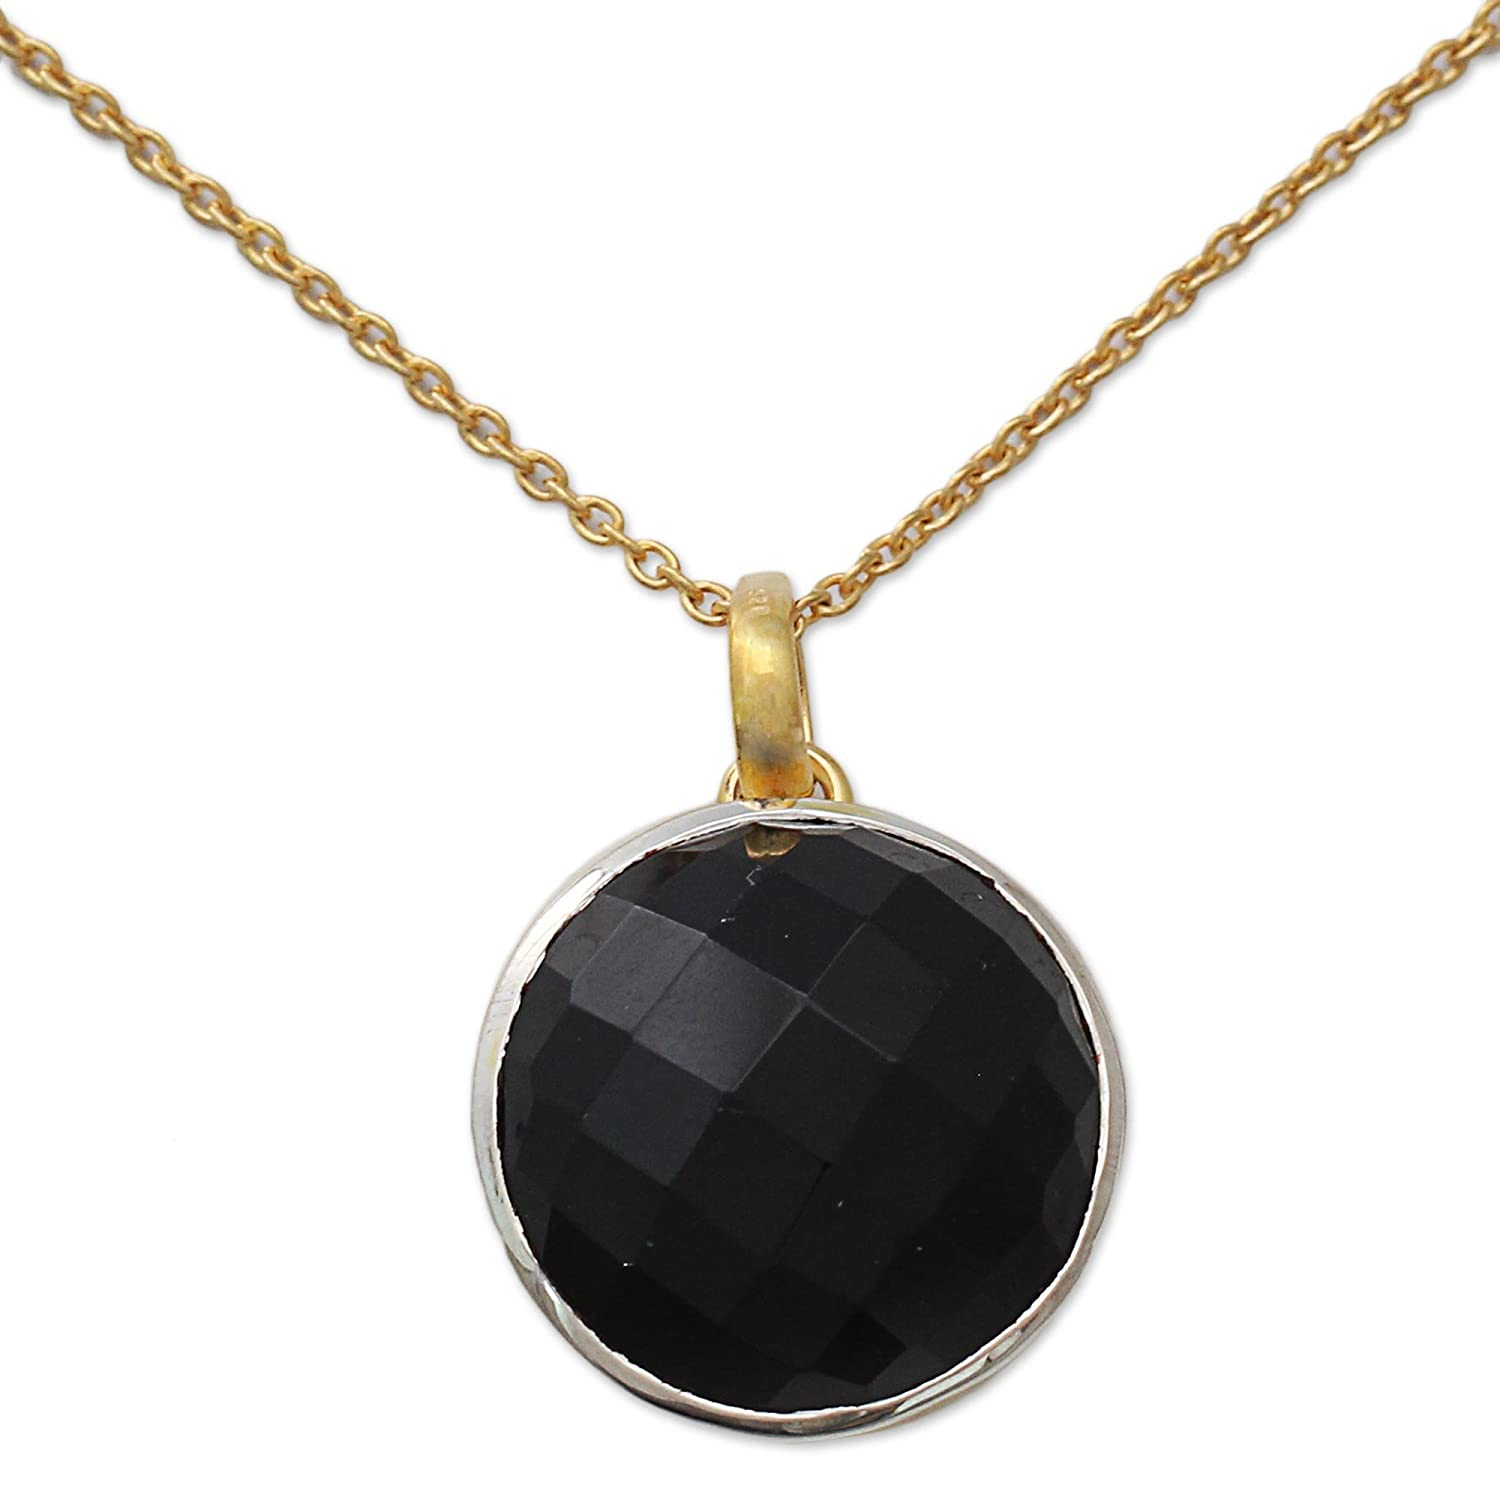 NOVICA Onyx 18k Gold Vermeil Pendant .925 Sterling Silver Necklace 18.75 Ecstasy in Black